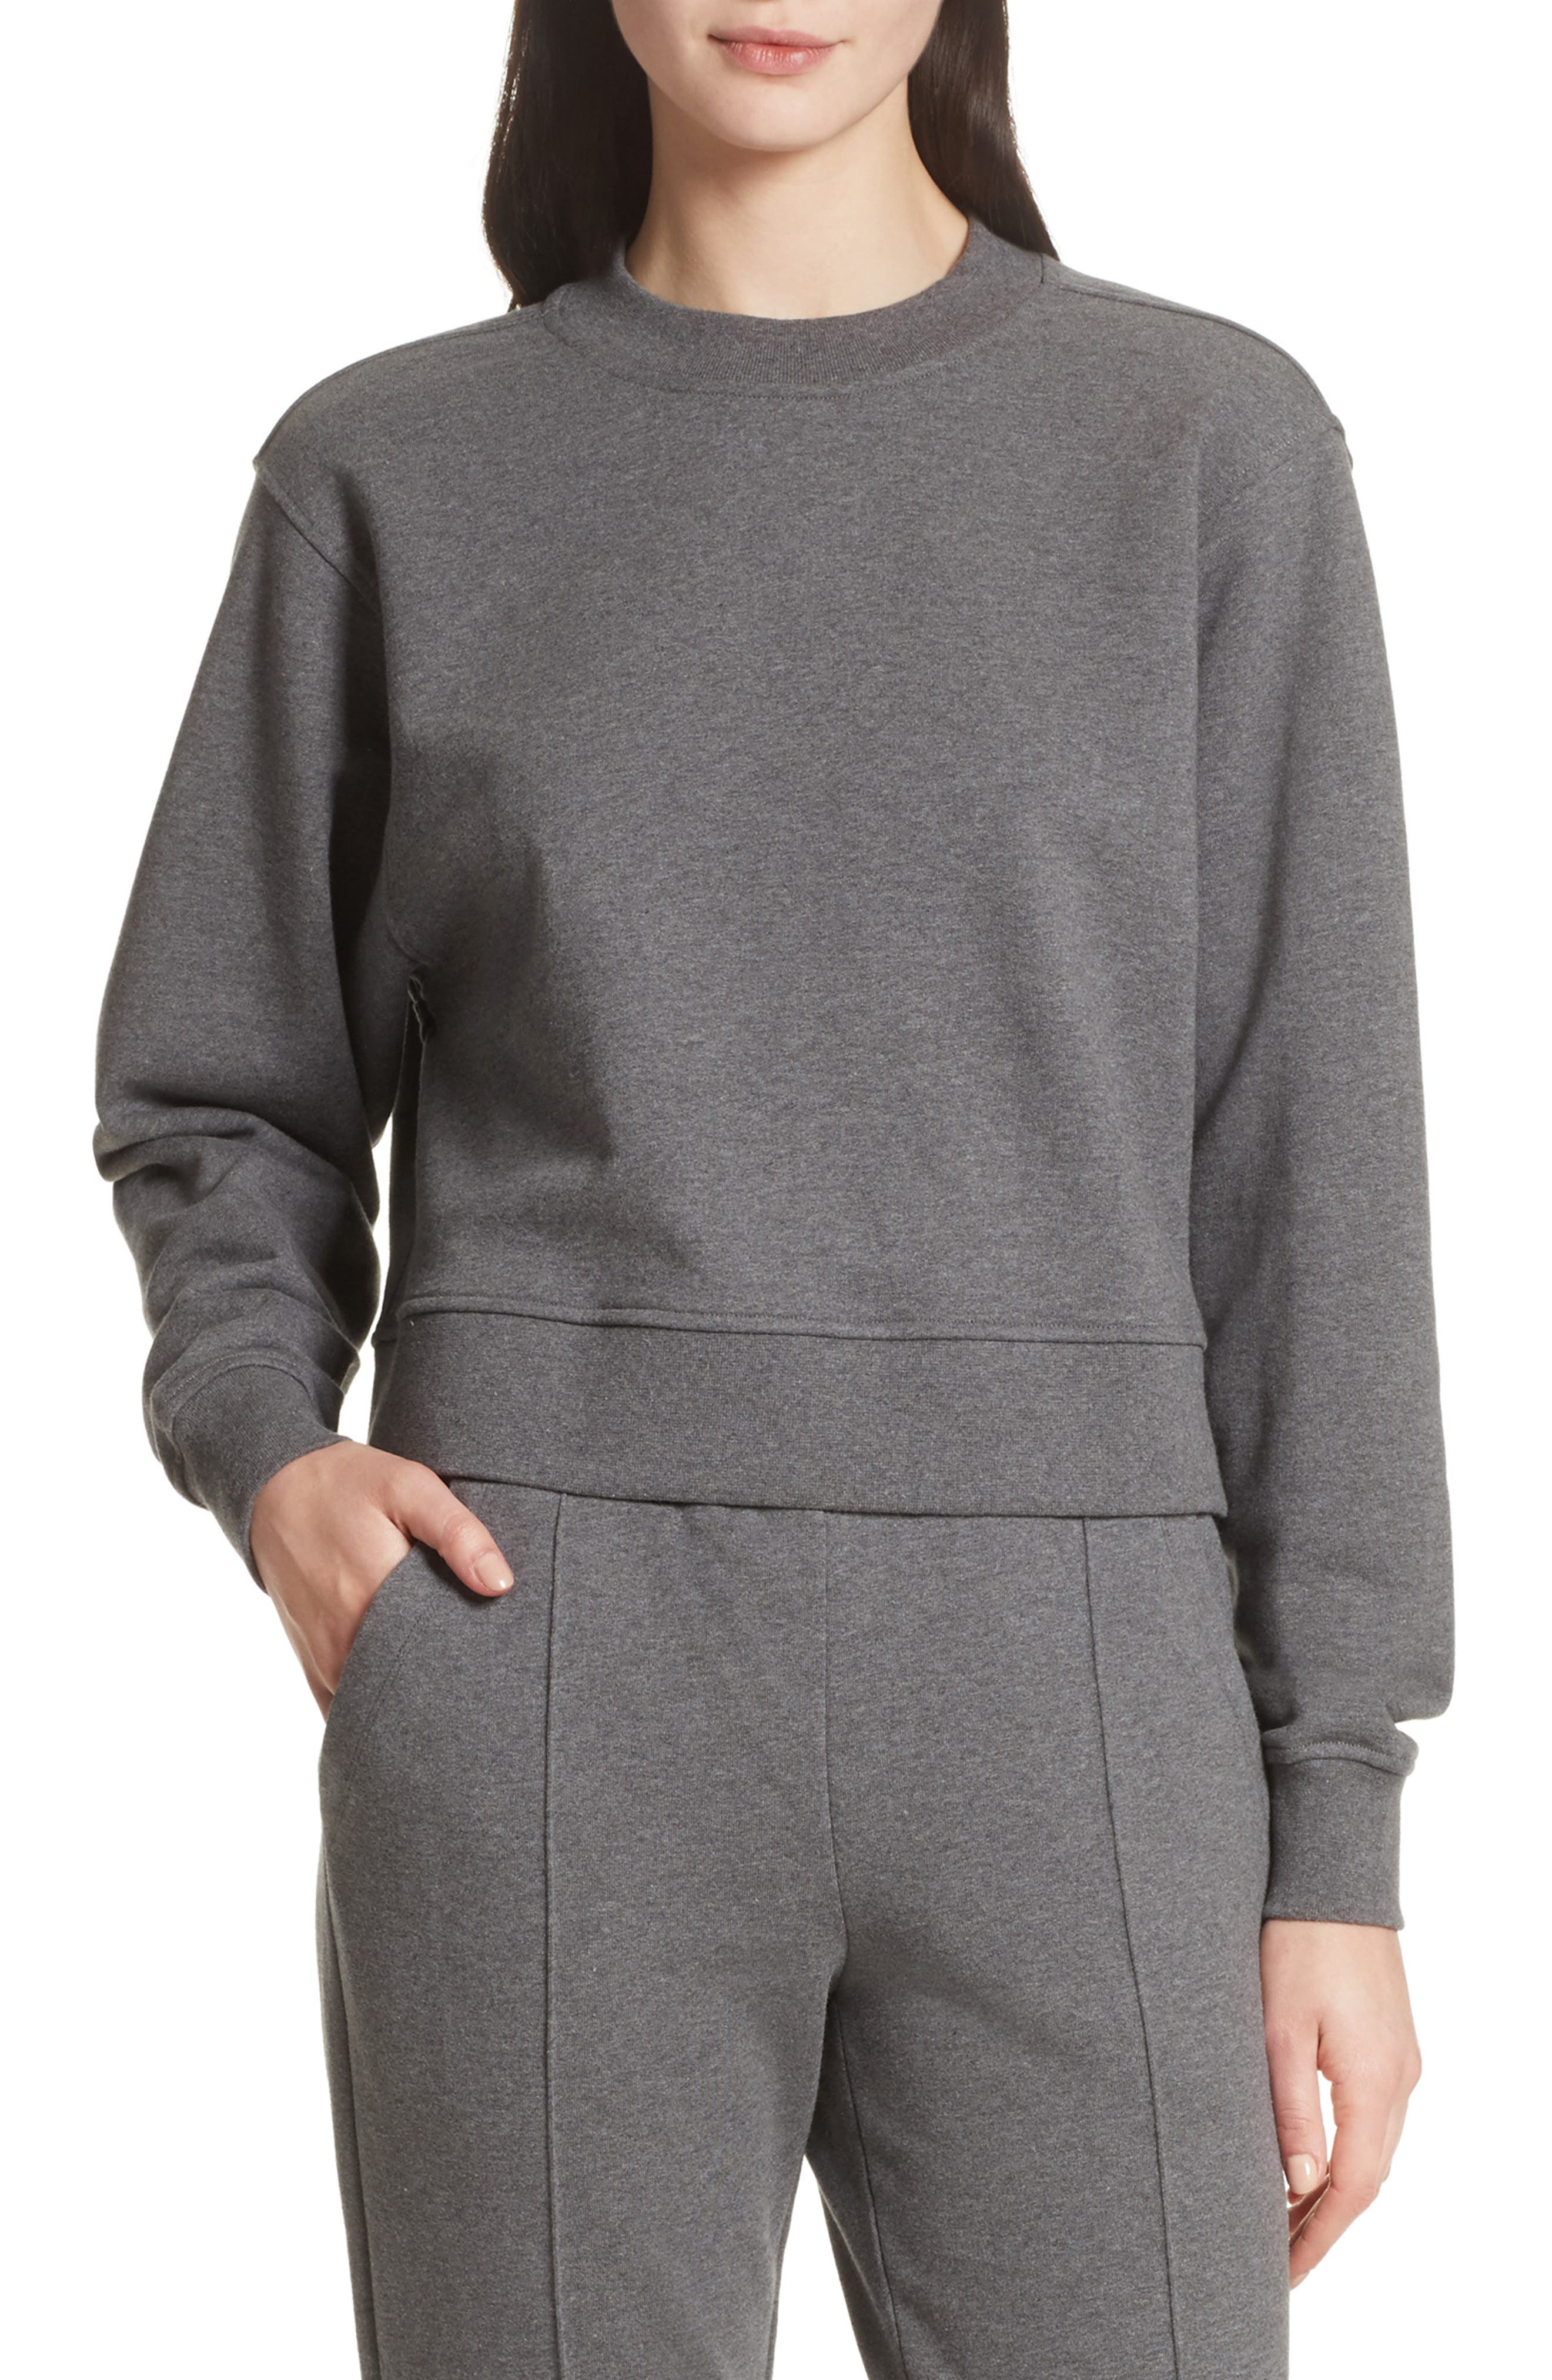 French Terry Tie Back Sweatshirt,                         Main,                         color, Heather Grey